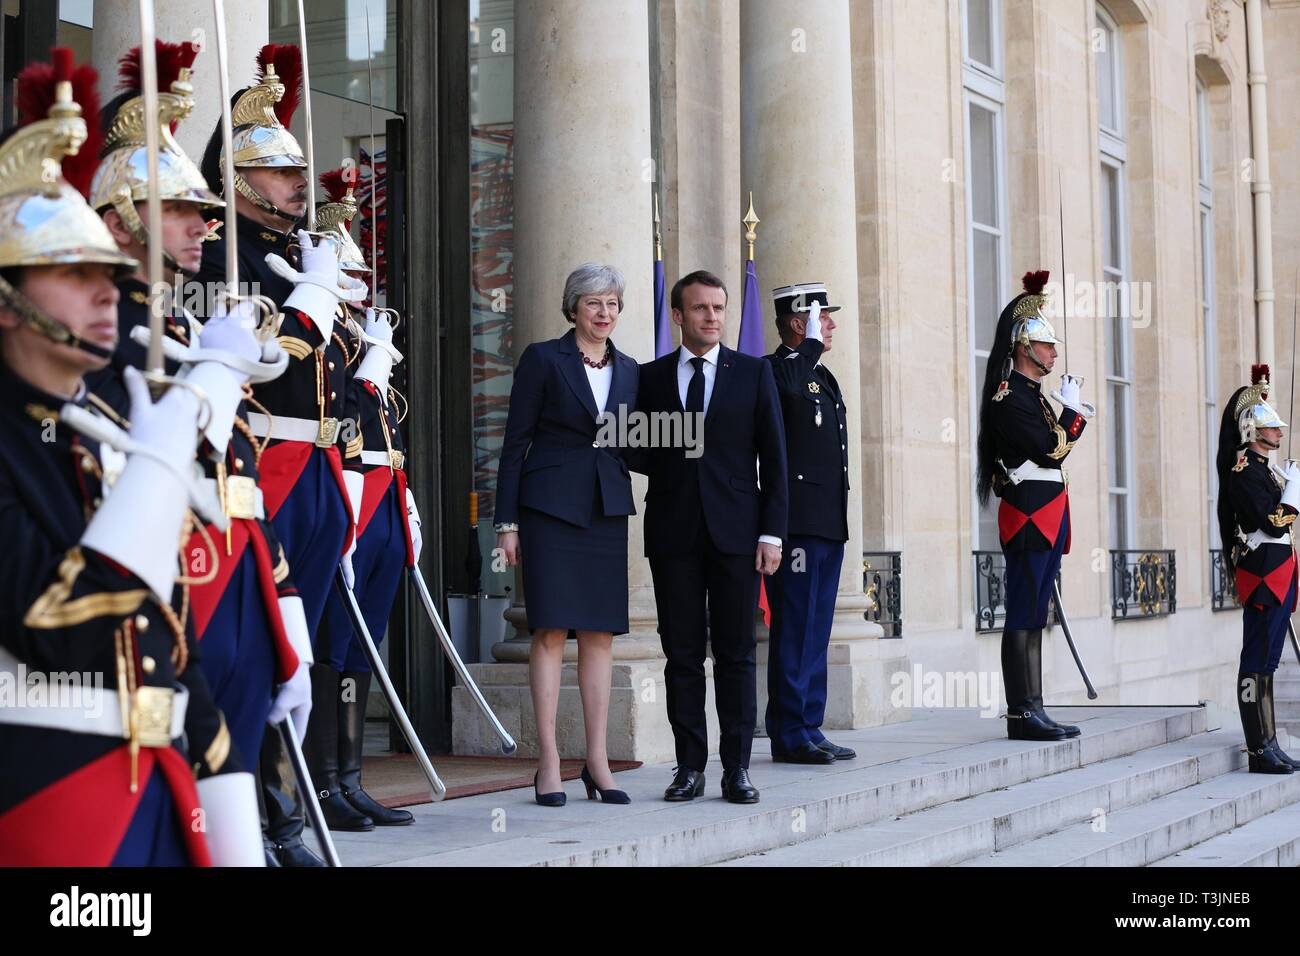 Paris, France. 9th Apr, 2019. French President Emmanuel Macron welcomes visiting British Prime Minister Theresa May at the Elysee Palace in Paris, France, April 9, 2019. May held talks in Berlin with German Chancellor Angela Merkel and in Paris with French President Emmanuel Macron during a day of whistle-stop diplomacy in her race to win a delay to the country's departure from the European Union (EU). Credit: Gao Jing/Xinhua/Alamy Live News - Stock Image